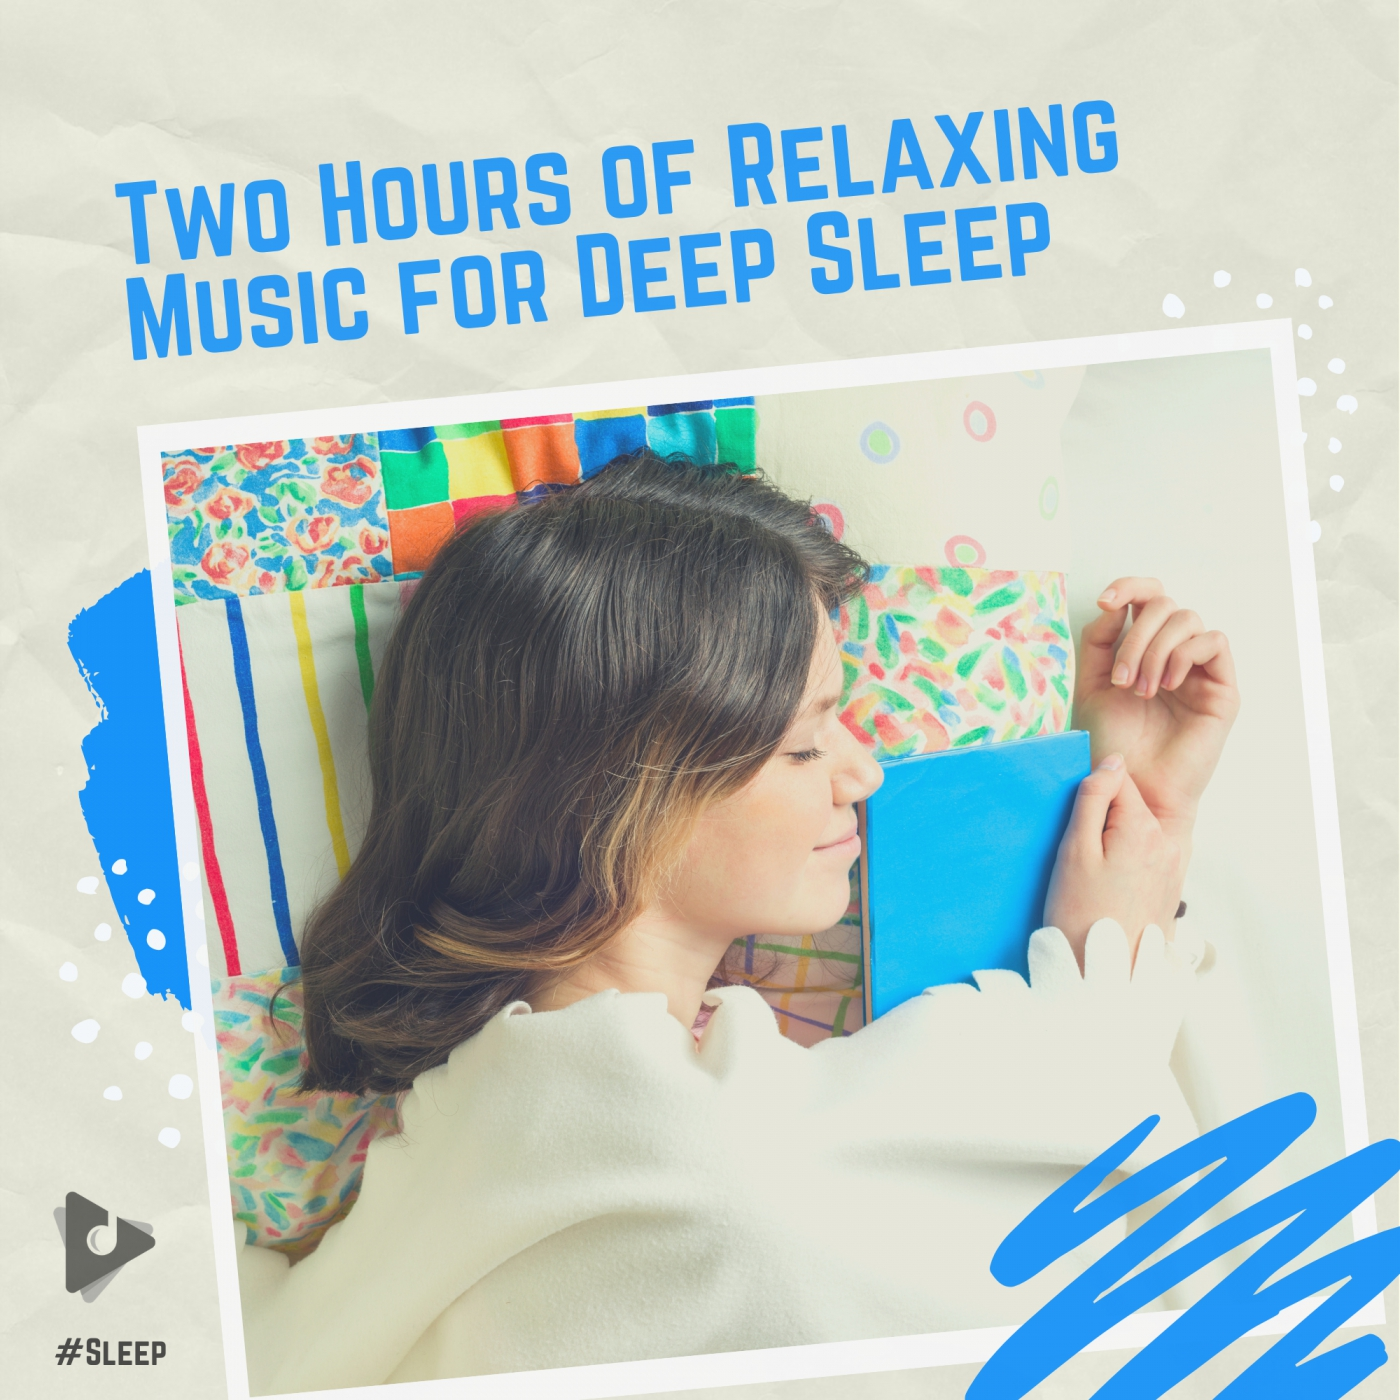 Two Hours of Relaxing Music for Deep Sleep